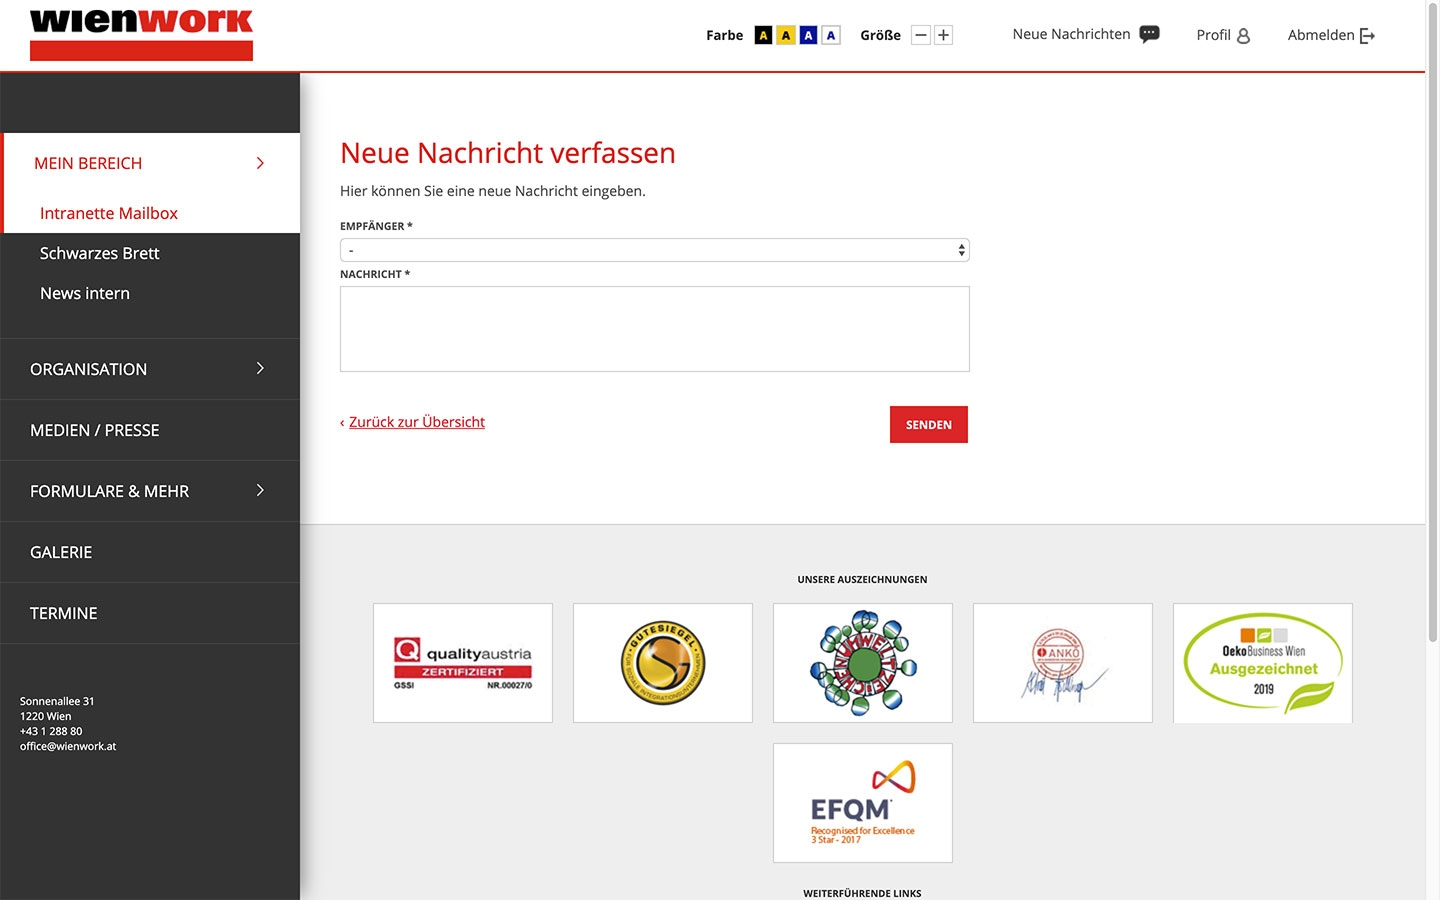 Wien Work Intranet | intranet.wienwork.at | 2018 (Screen Only 08) © echonet communication